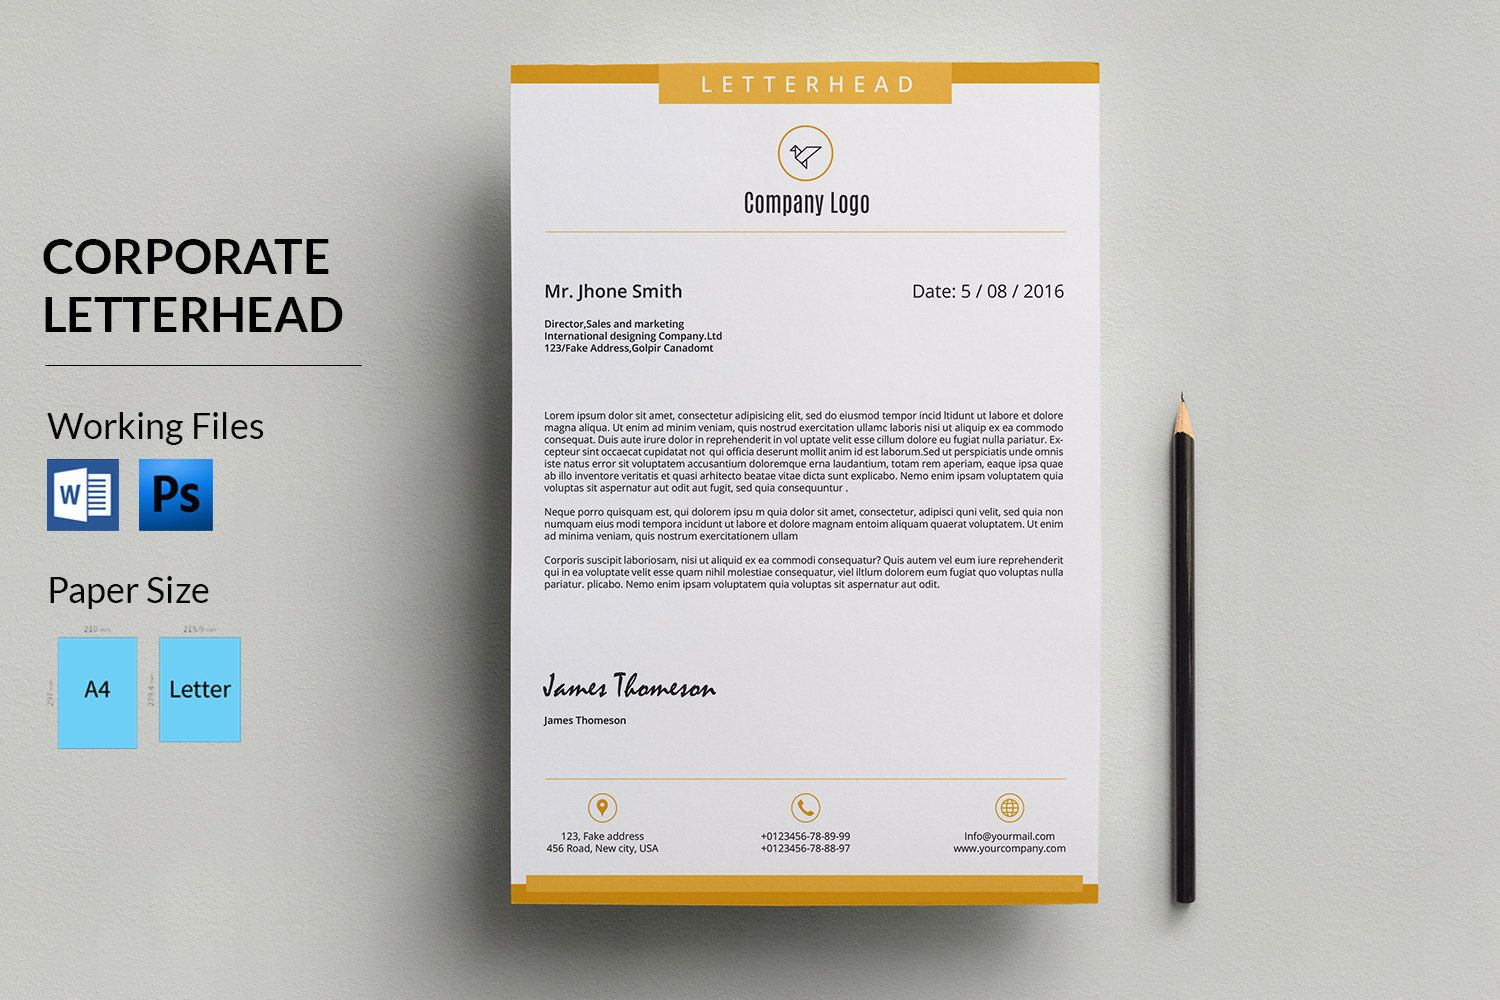 company letterhead example corporate letterhead template business